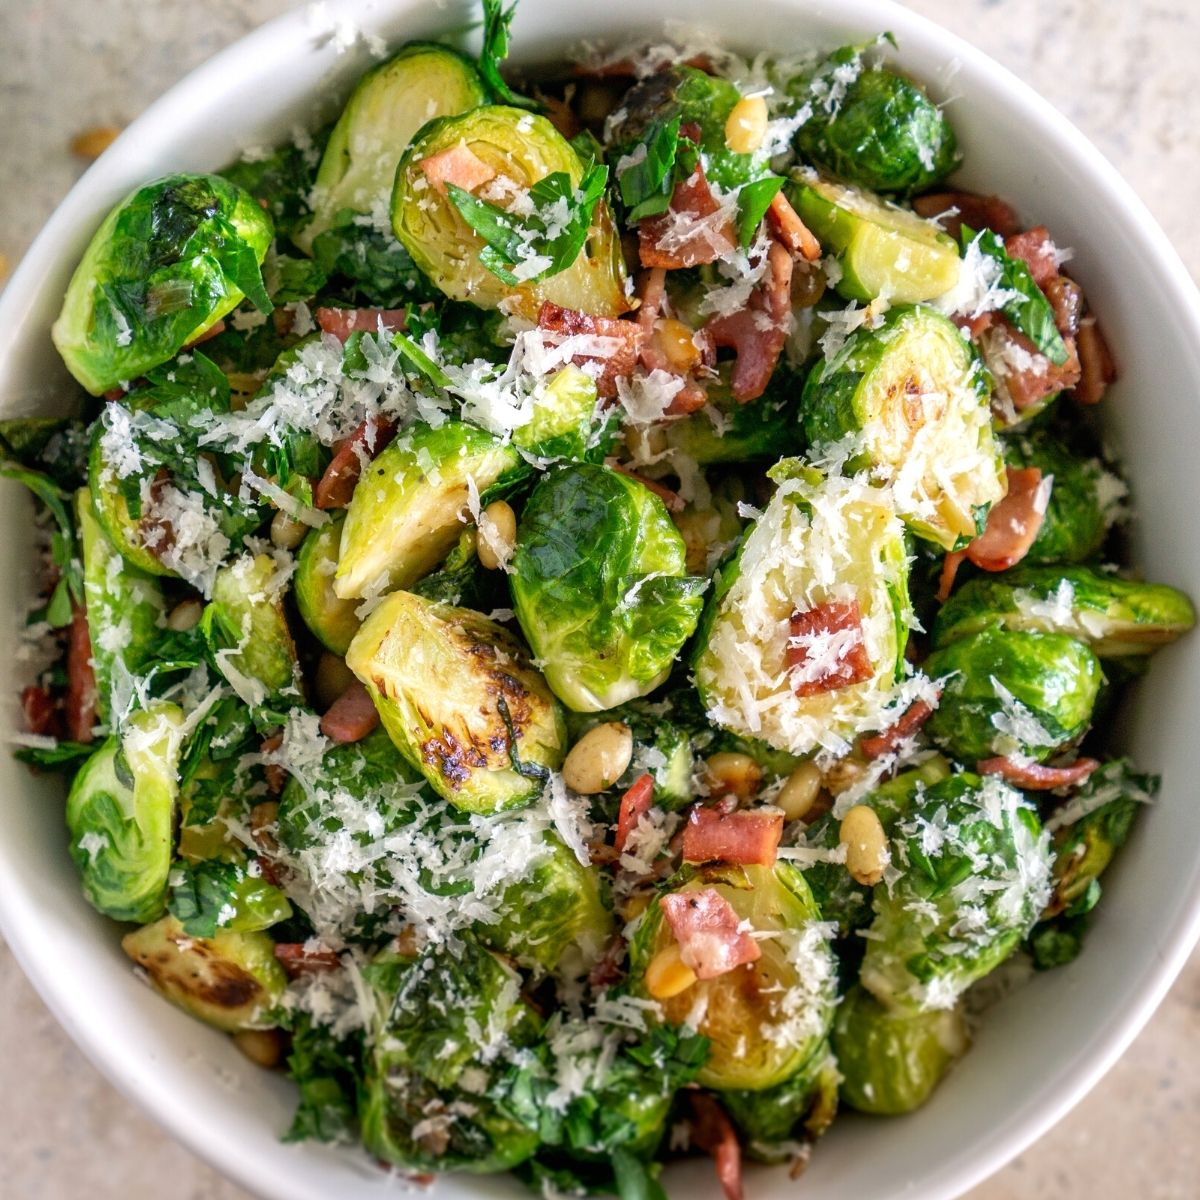 pan-fried brussels sprouts with parmesan and bacon in a bowl